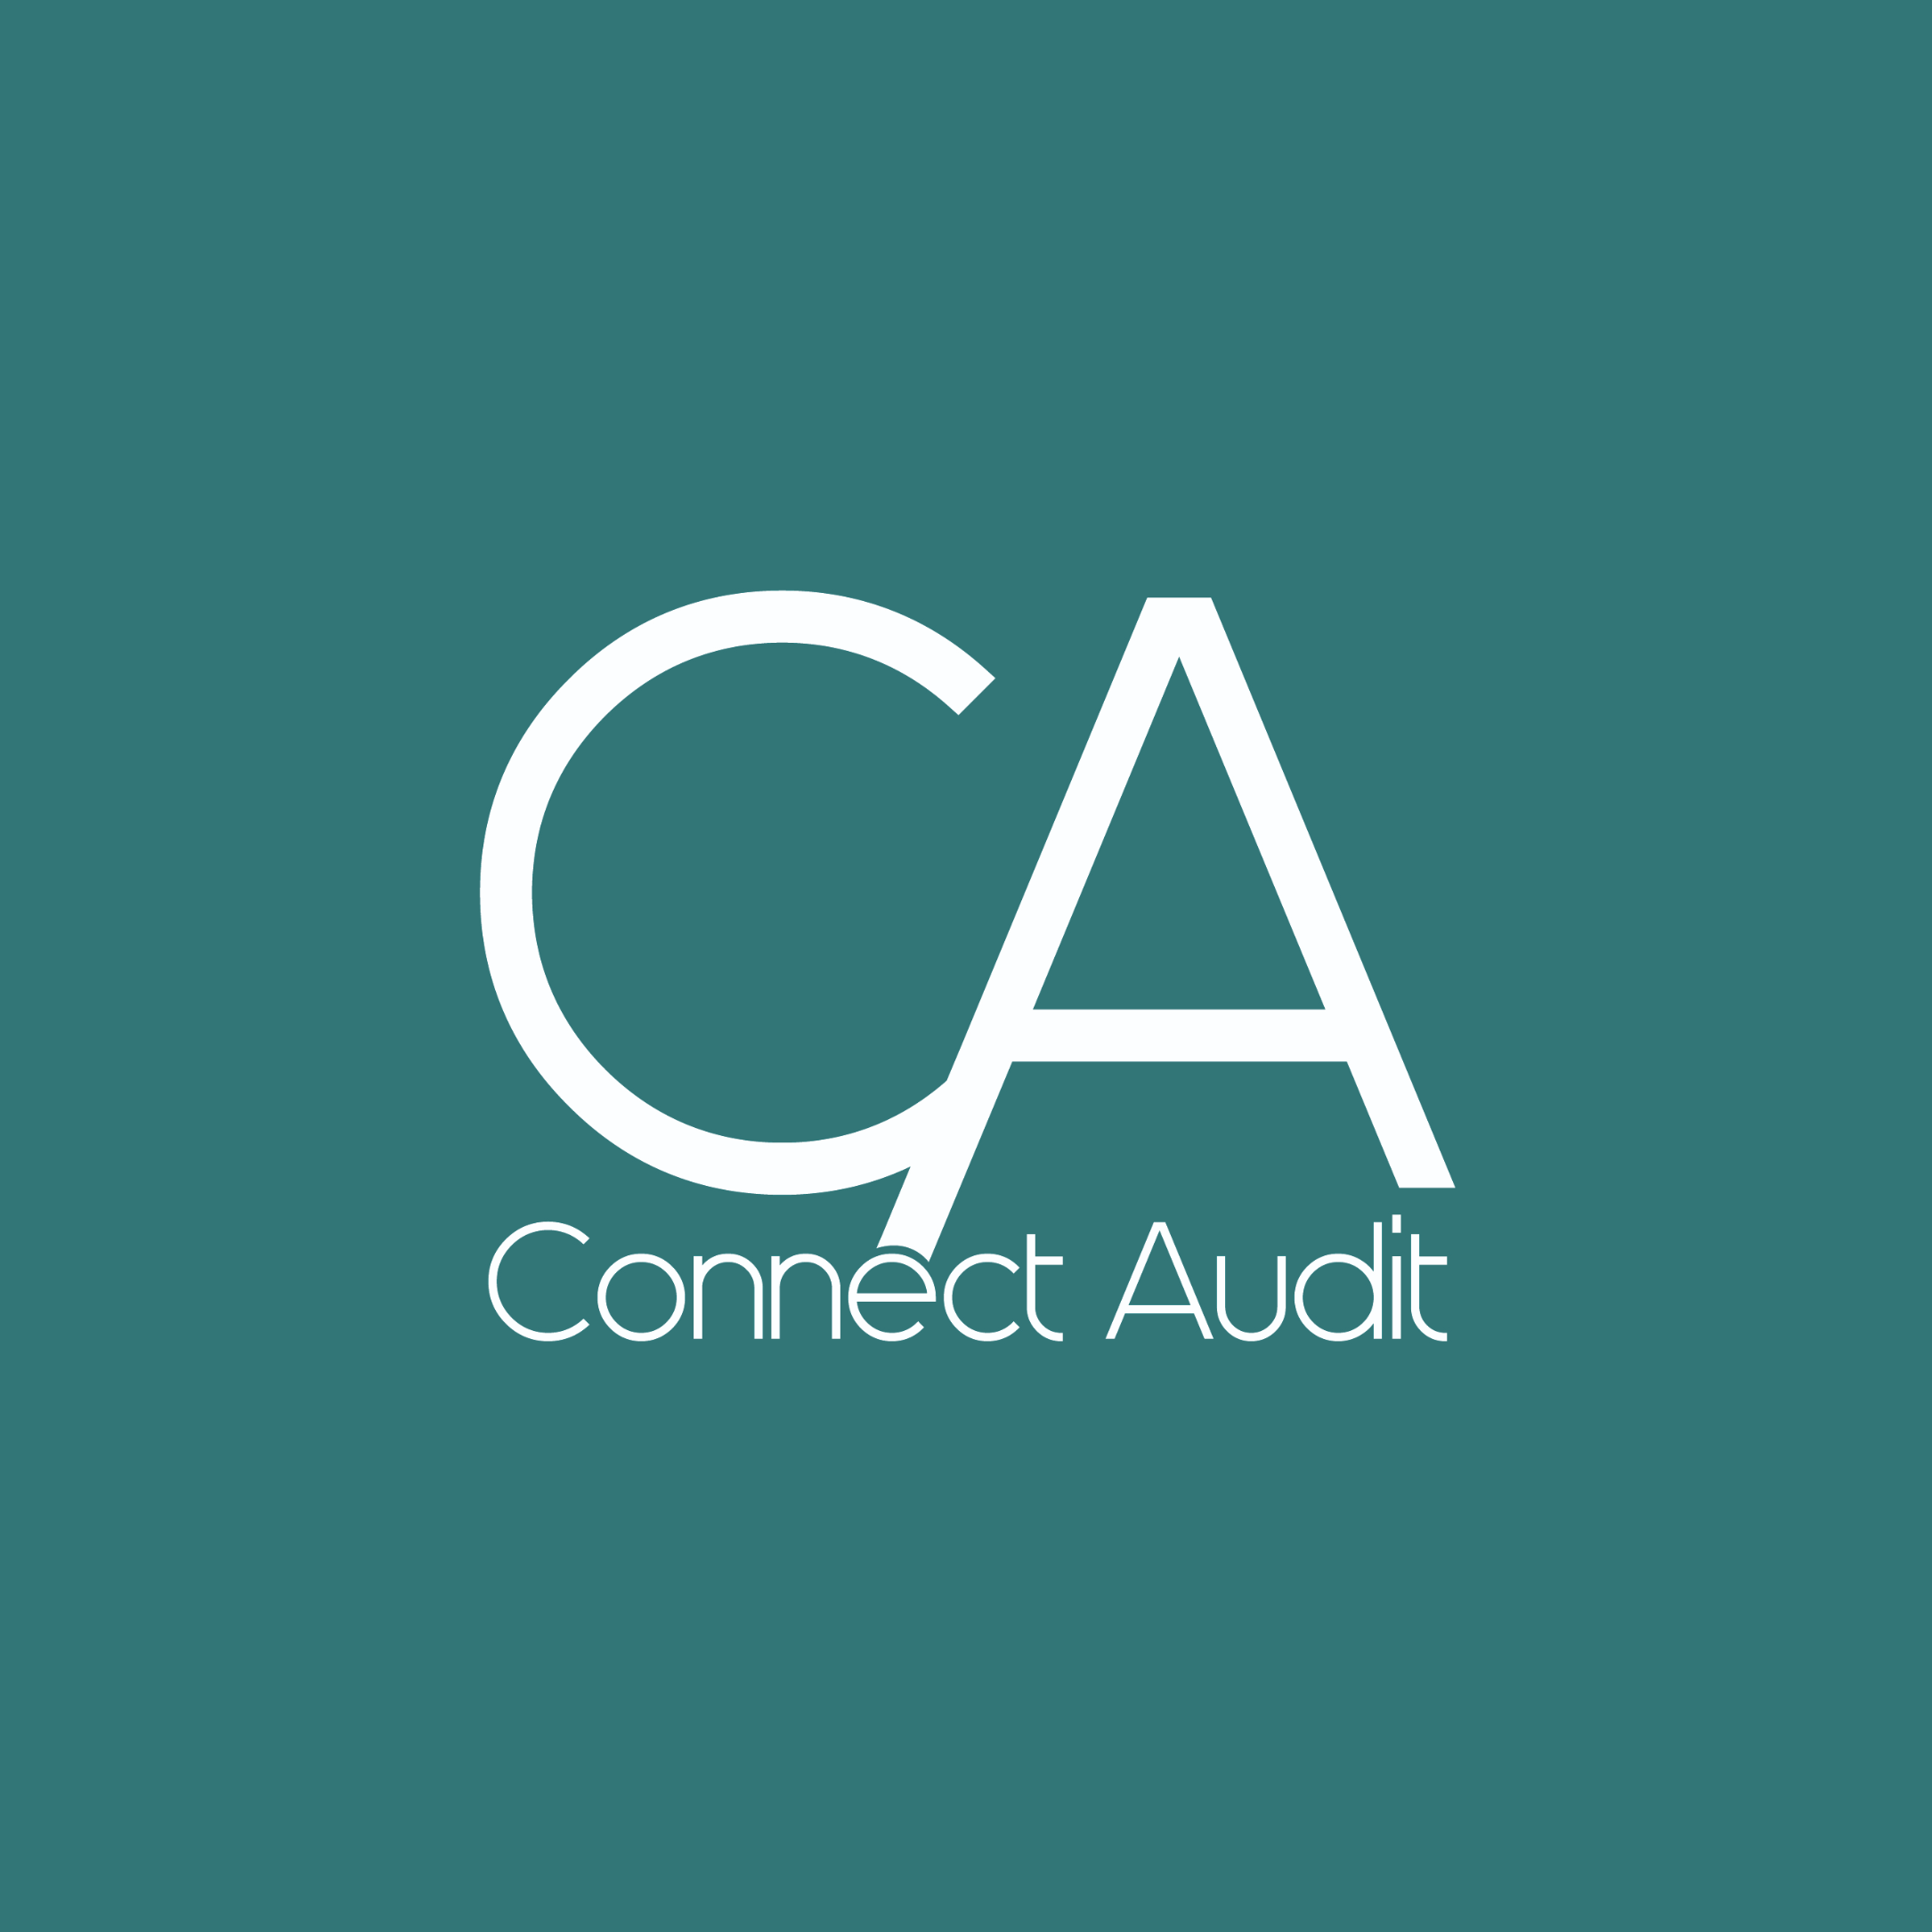 Connect Audit & Assurance Services Pty Ltd headshot